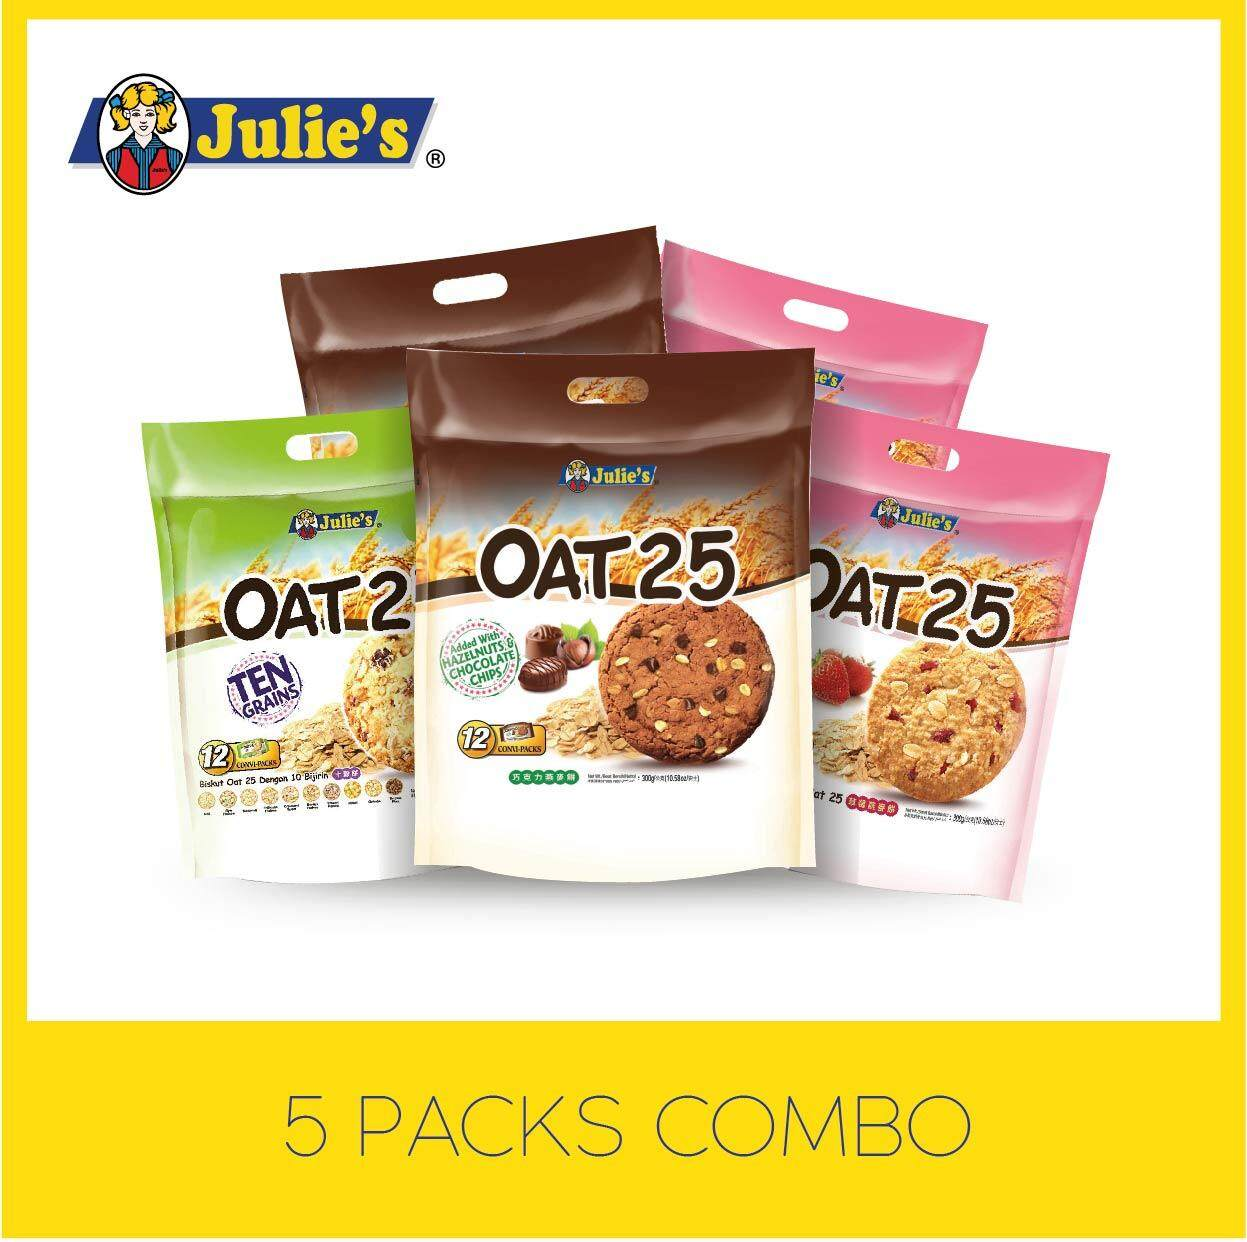 Julie's Oat25 Healthy Breakfast Deal + Free 5 pack Convi pack Biscuit